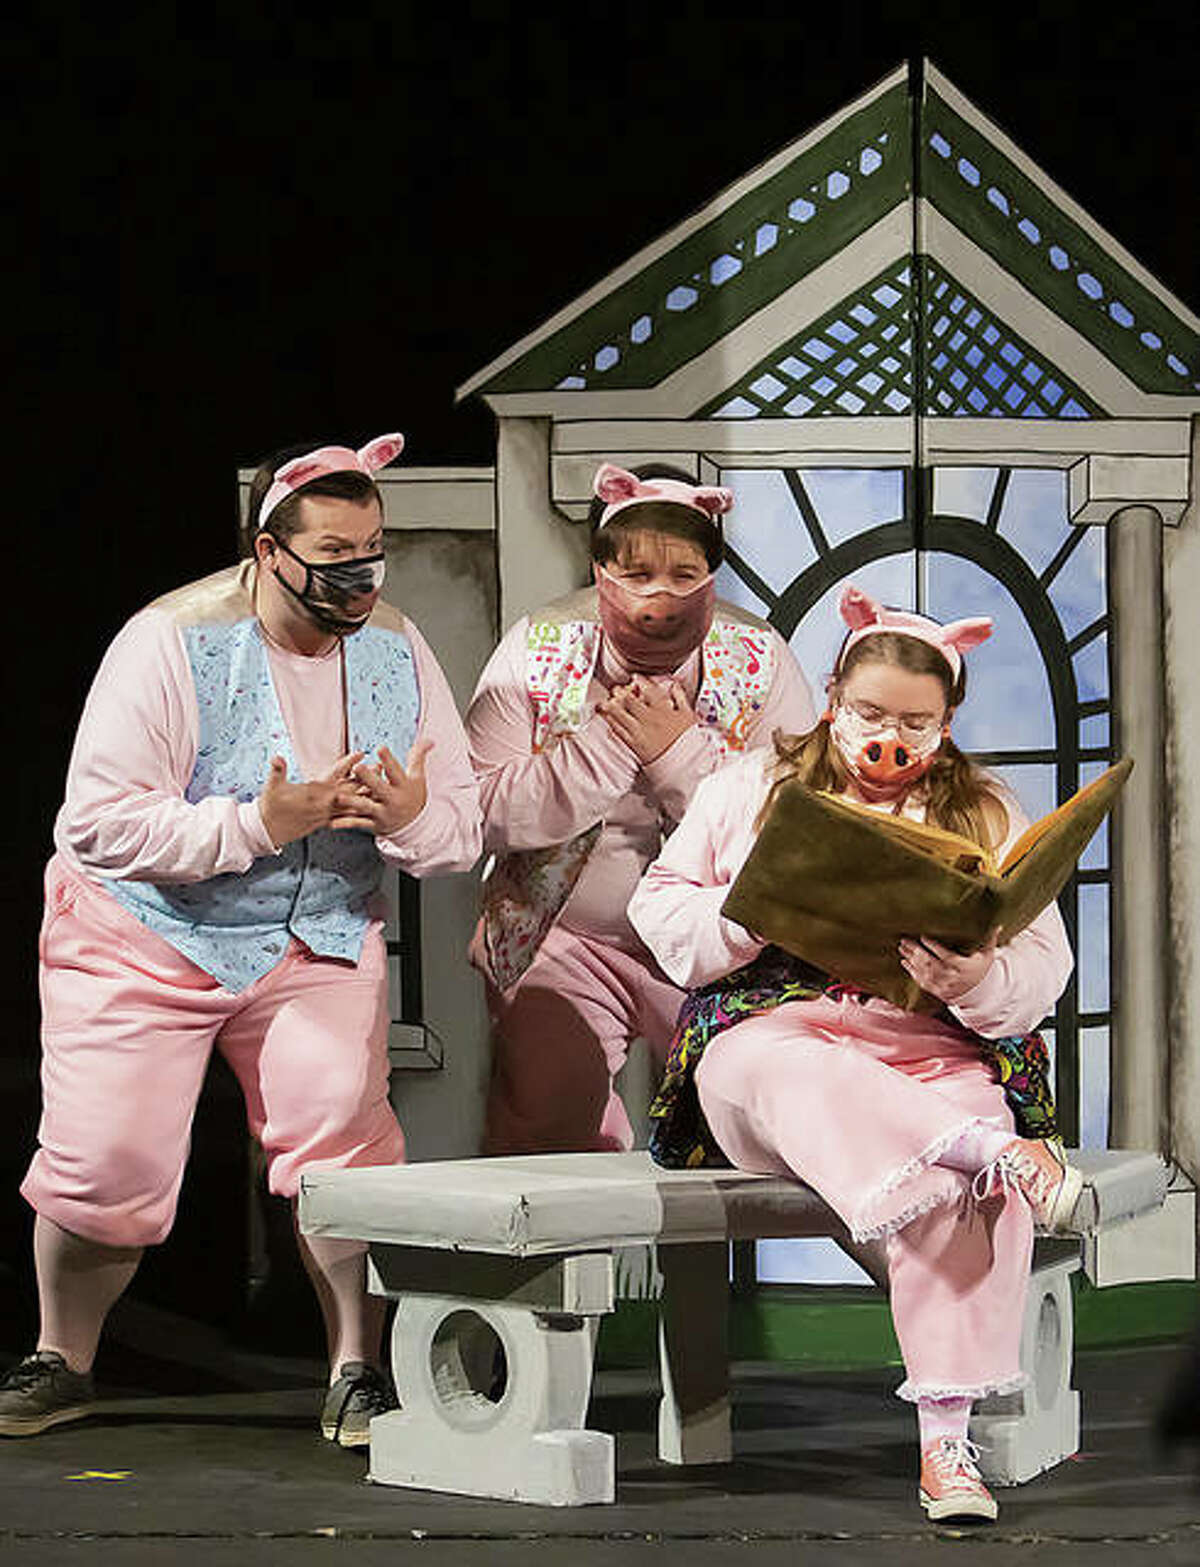 """Southern Illinois University Edwardsville students Xavier Ojeda, Evan Babel and Sarah Collins perform Opera Edwardsville's (OE) """"The Three Little Pigs: An Opera for Kids,"""" filmed Oct. 2 at SIUE's Dunham Hall Theater. The set, designed by Roger Speidel, is modeled as the Edwardsville Public Library. OE's """"The Three Little Pigs"""" will premiere publicly online for free Friday, Nov. 6, at www.operaedwardsville.org."""